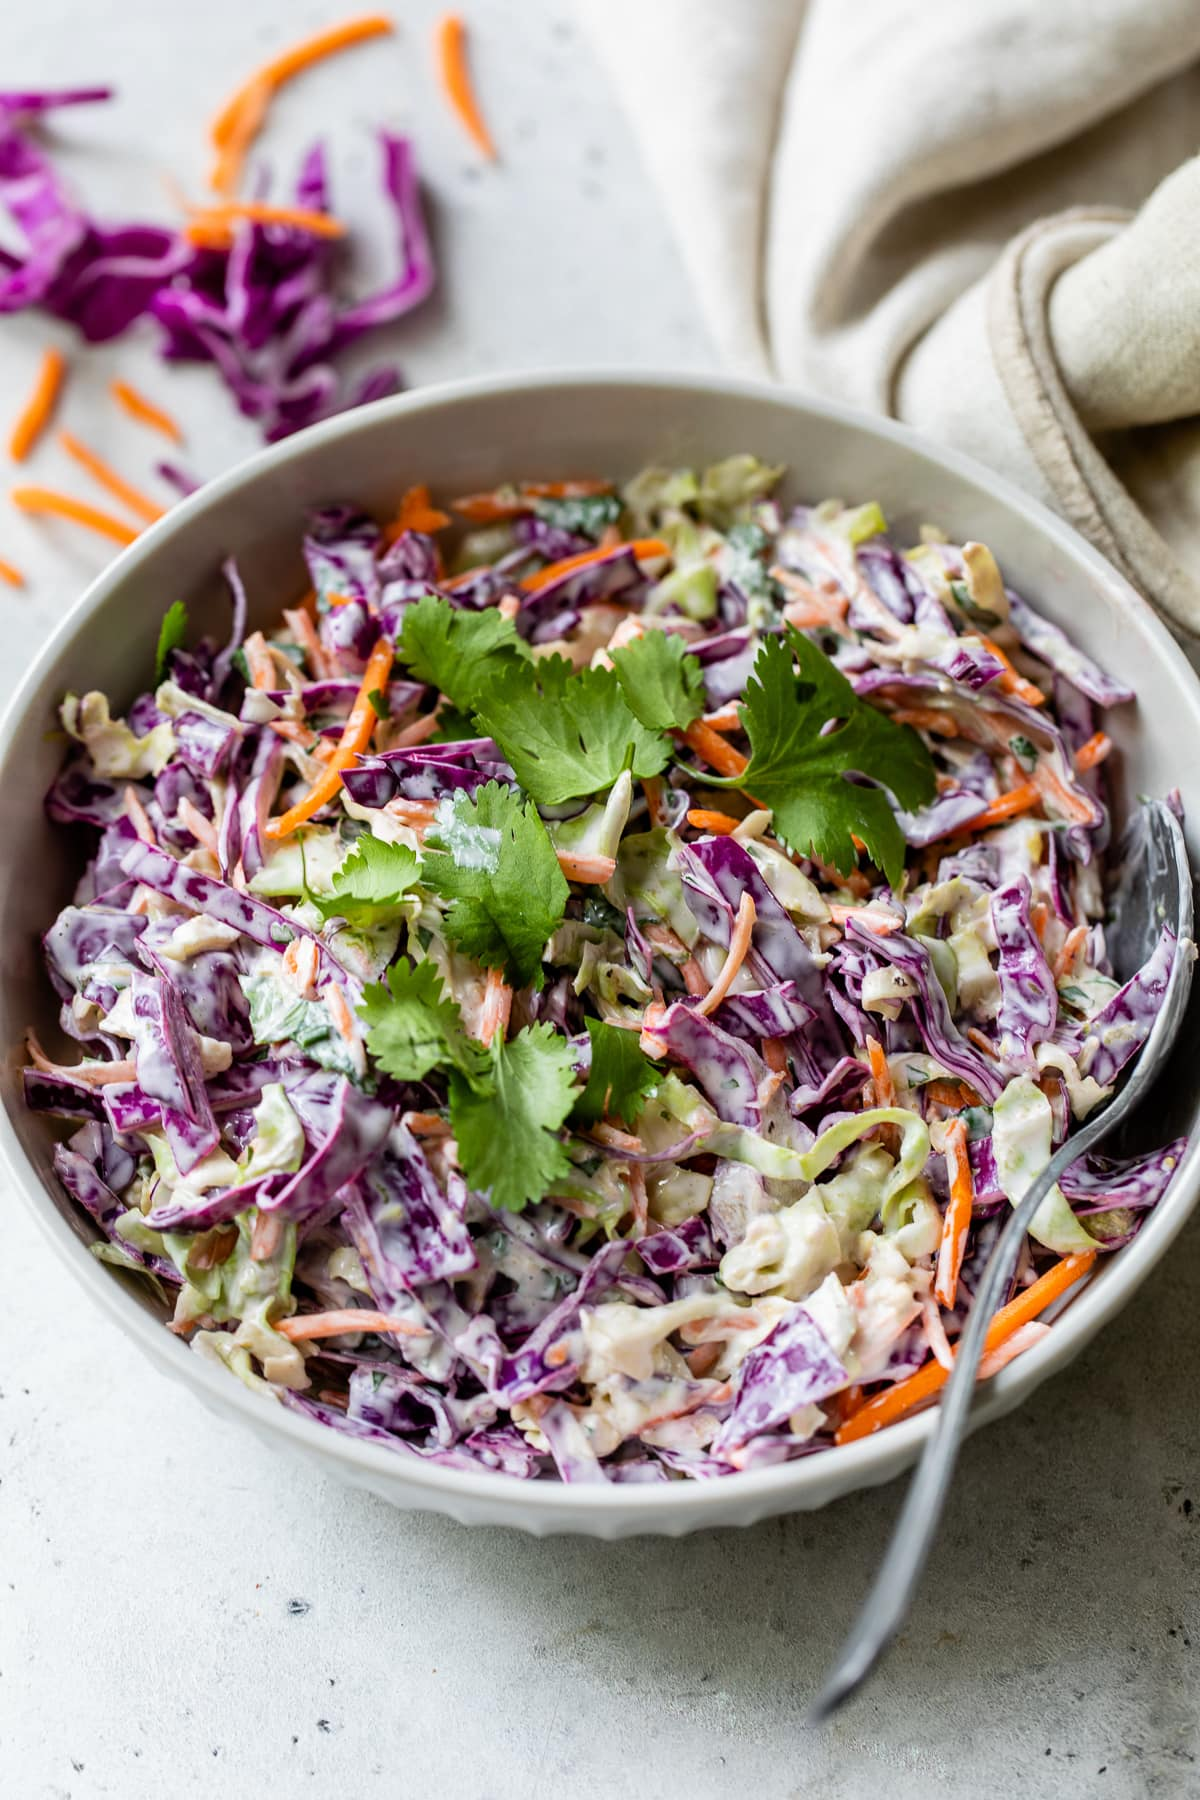 A bowl filled with fish taco slaw ready to eat.